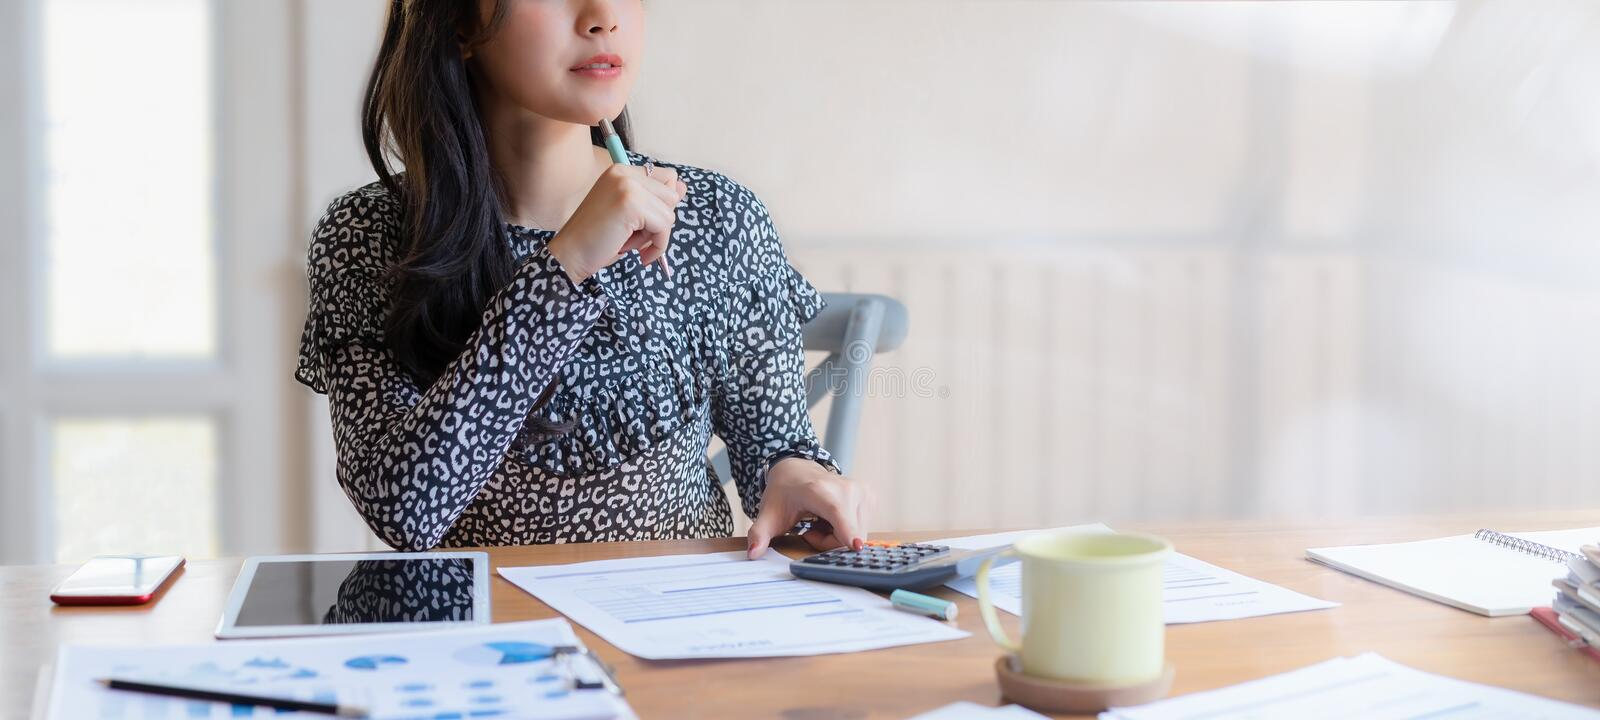 Cropped shot of beautiful asian female accountant using calculator making calculations Savings at home. Working at home concept royalty free stock image